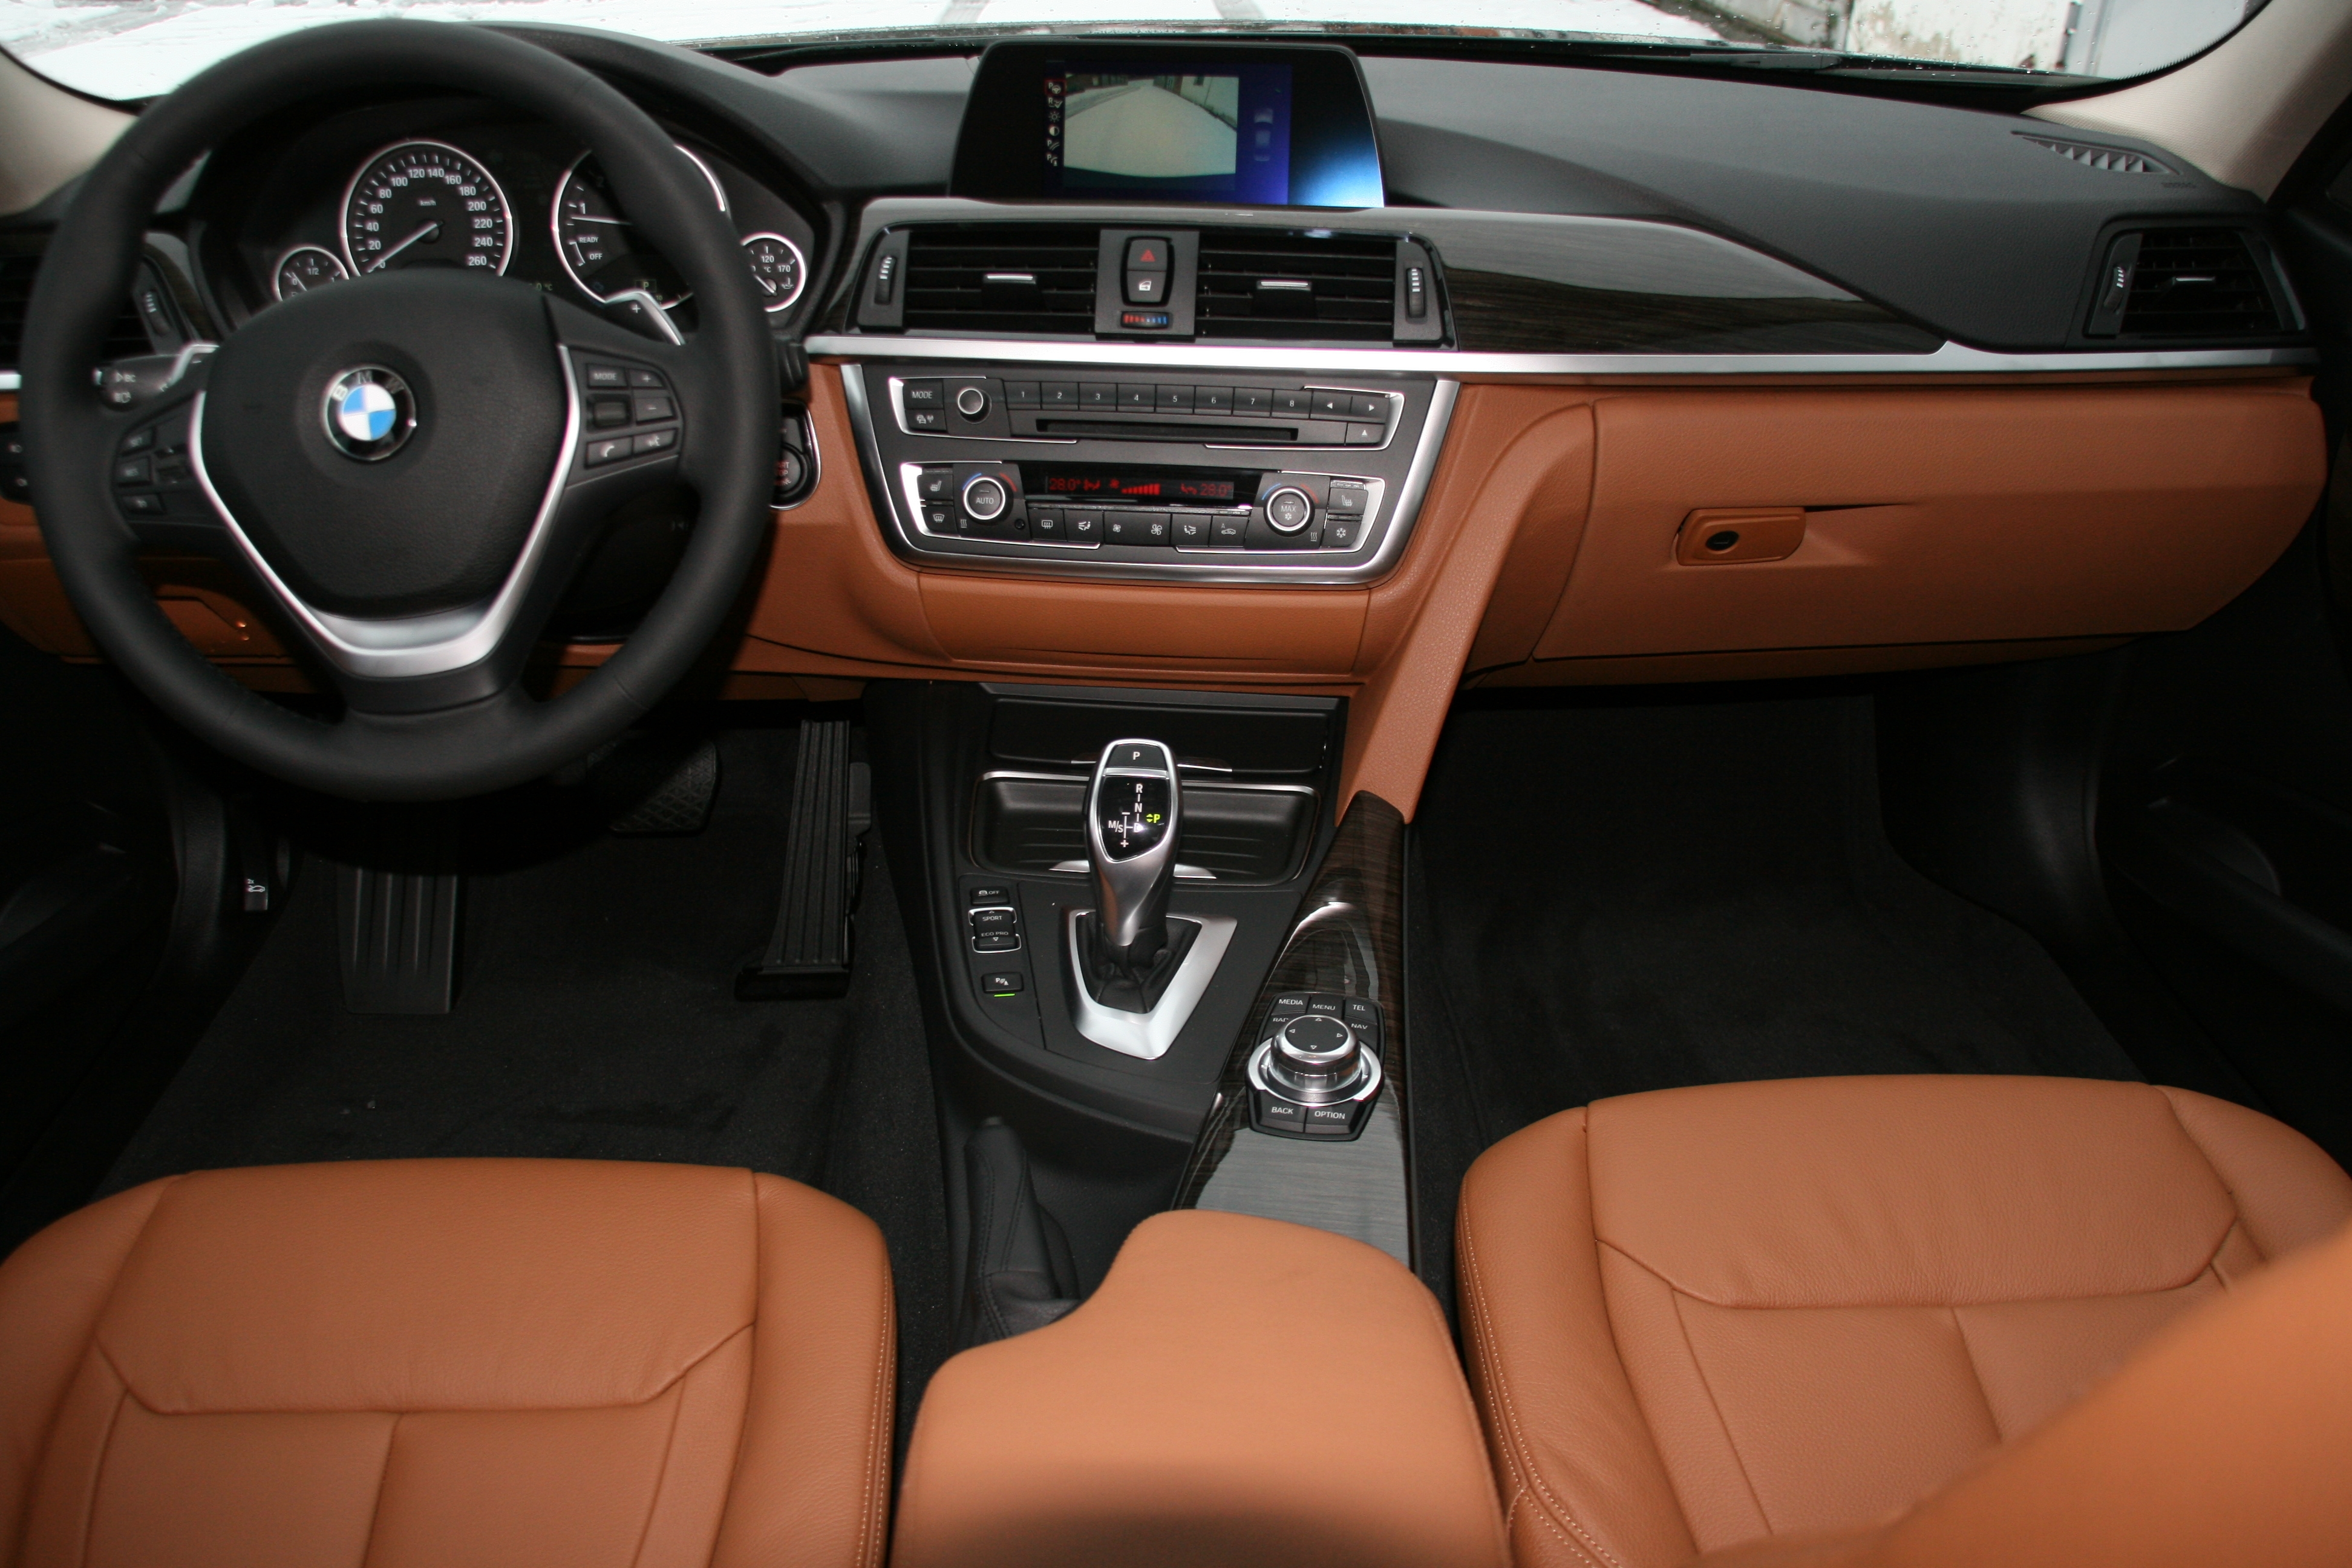 Description BMW 328i F30 2012 Armaturenbrett.jpg